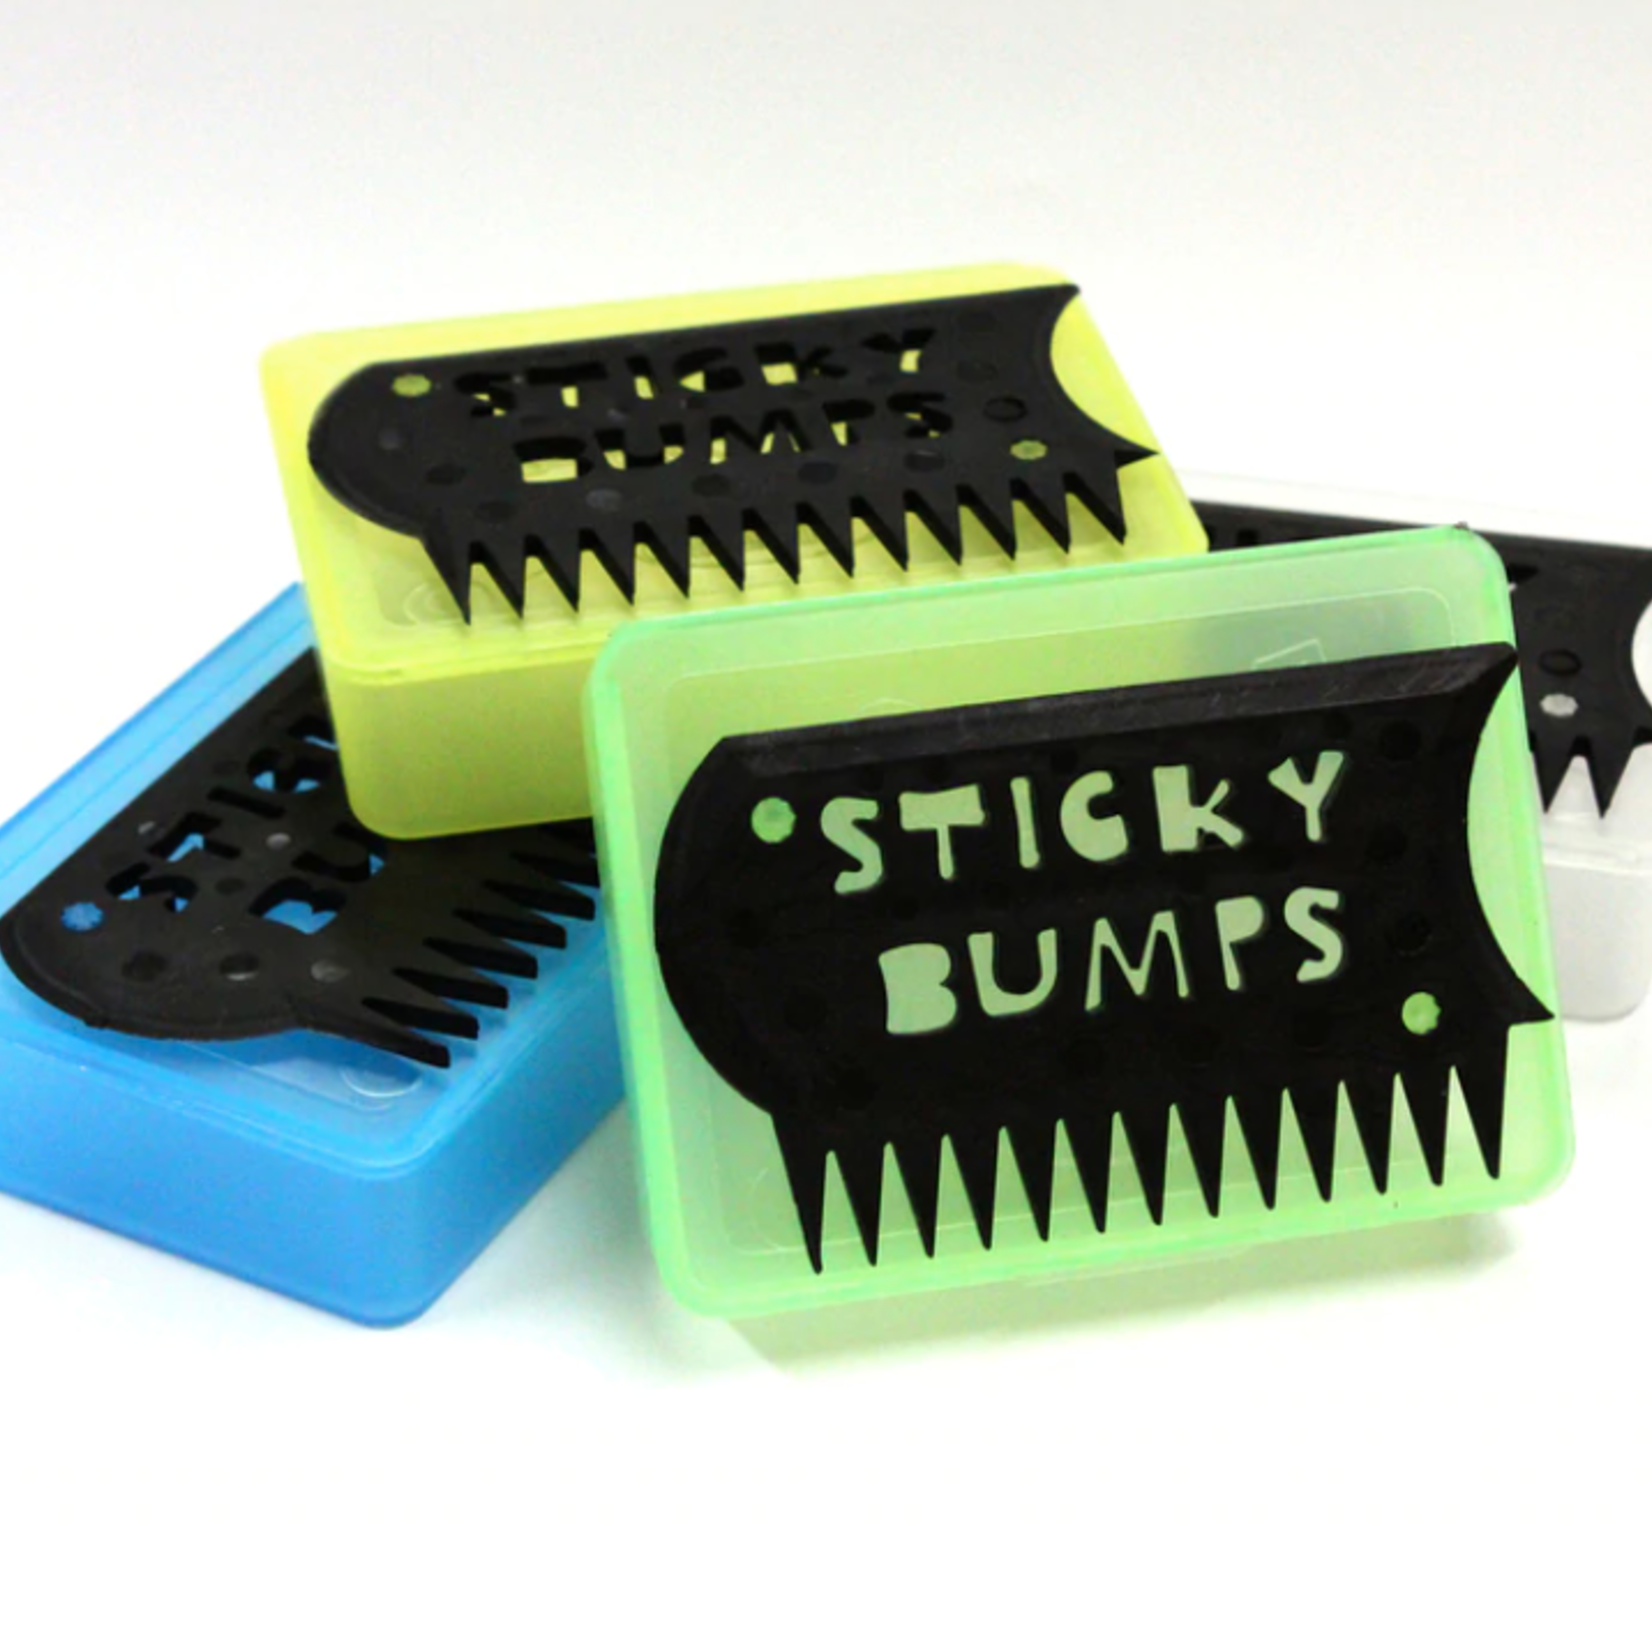 Sticky Bumps Sticky Bumps Surf Wax Case with Comb.